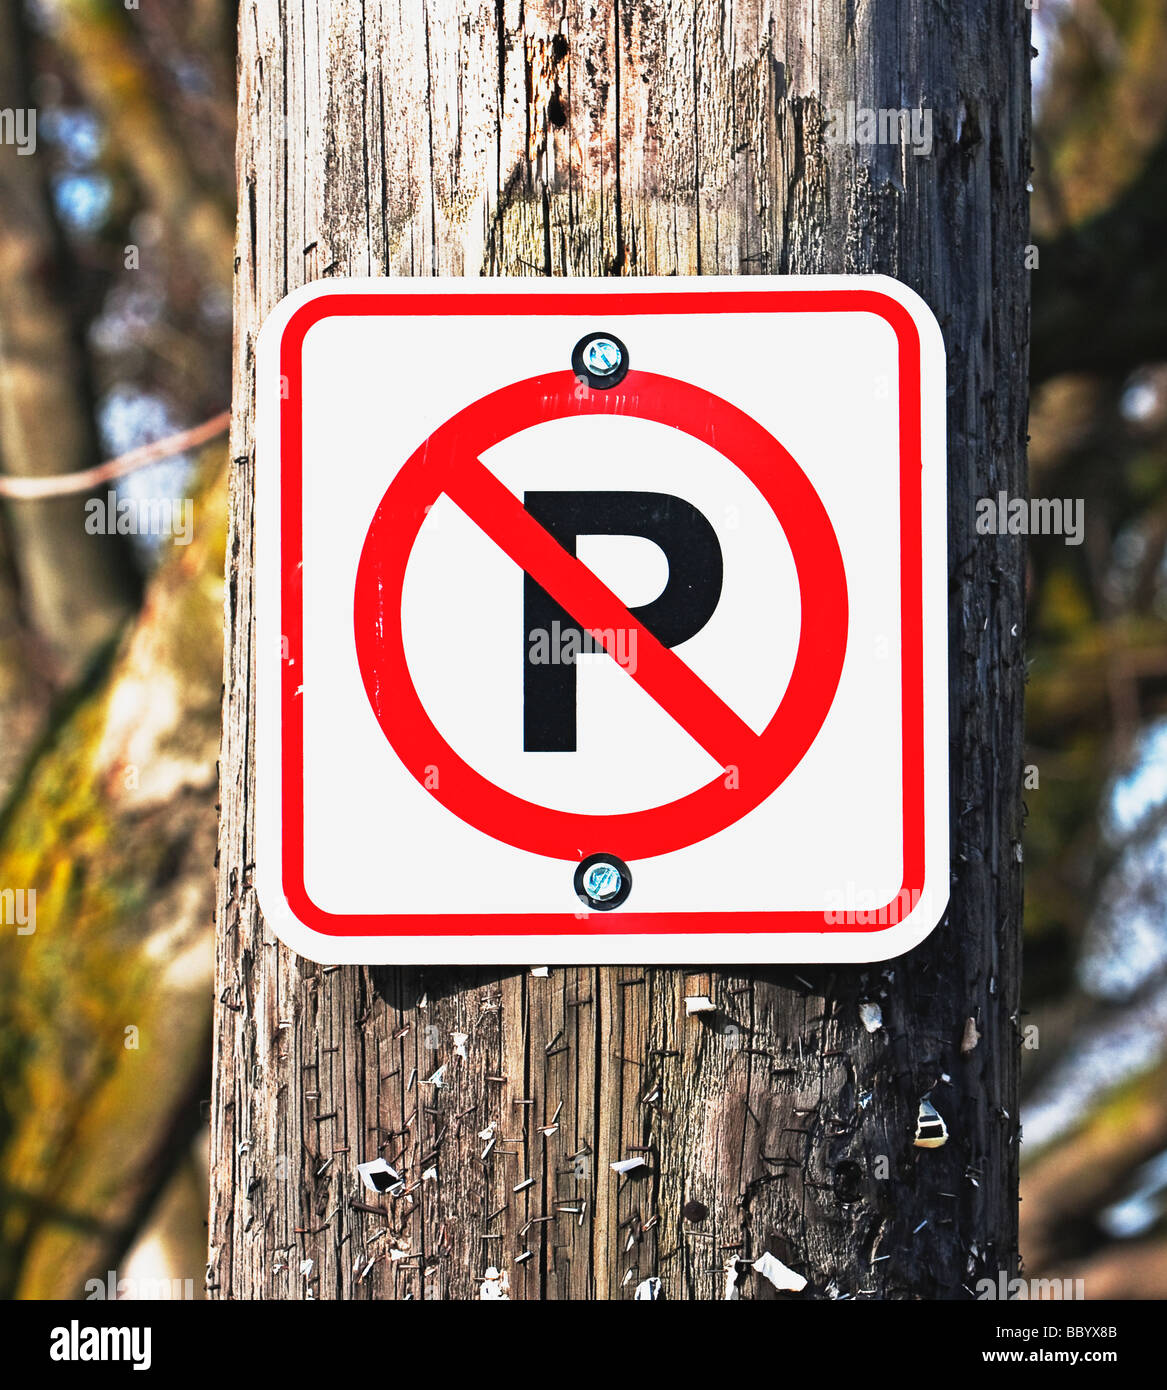 no parking sign mounted on wooden pole - Stock Image